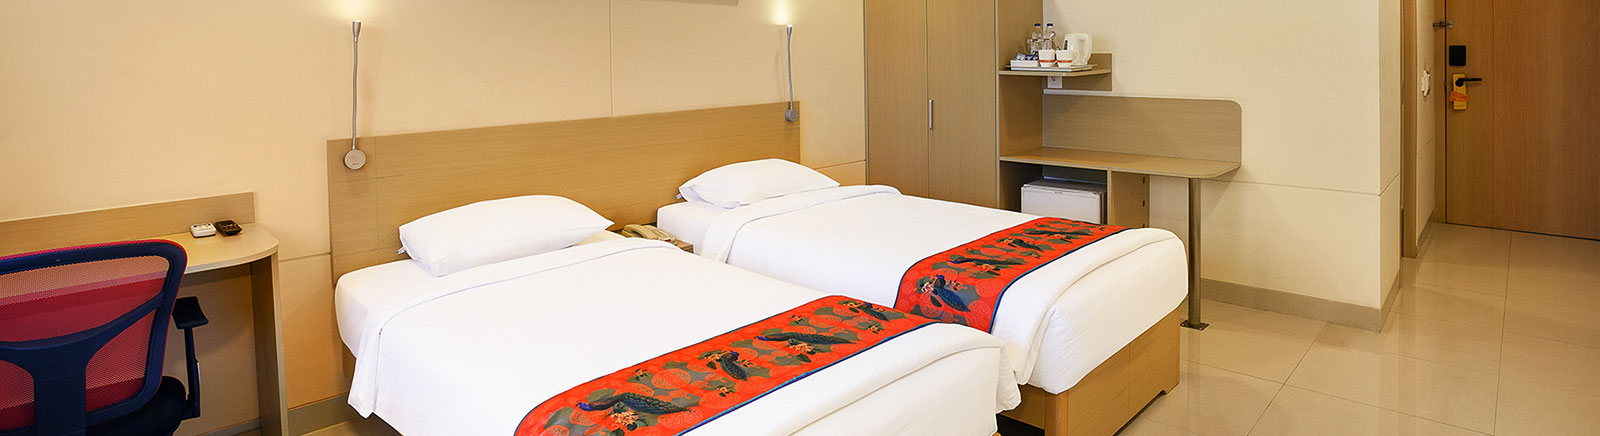 Ginger Surat City Center Hotel Services & Facilities